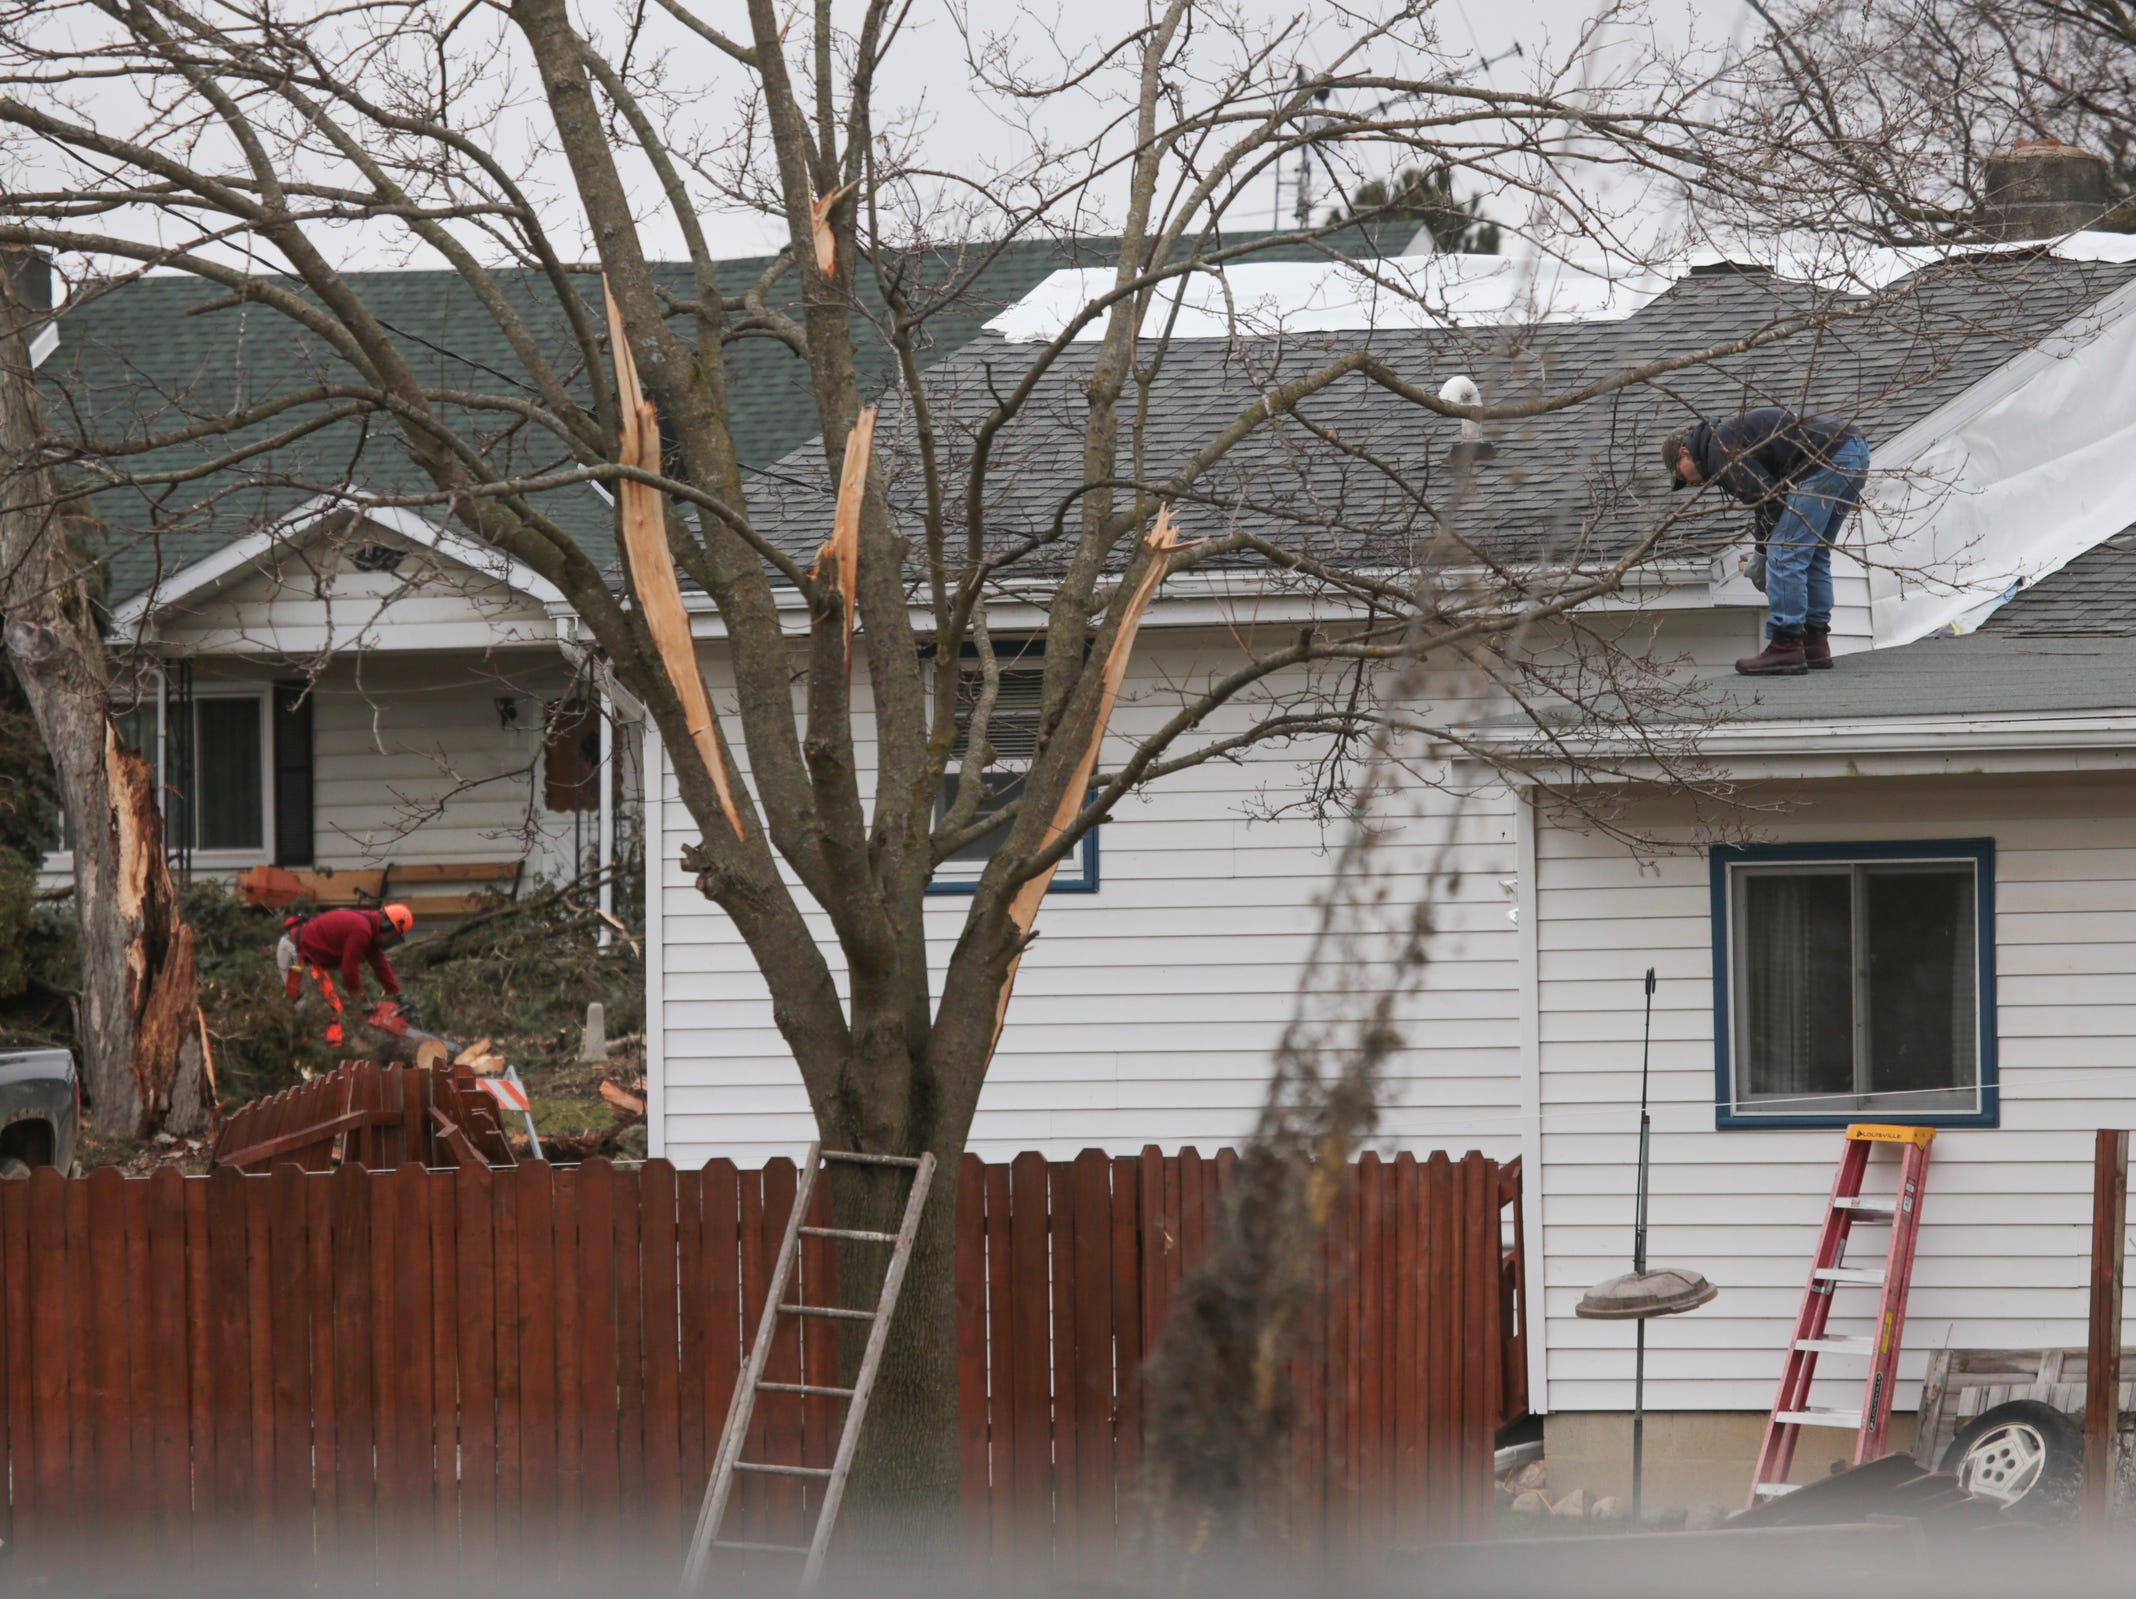 Residents work on clearing damage to yards and homes from a tornado that came through Shiawassee County overnight in Bancroft on Friday, March 15, 2019.